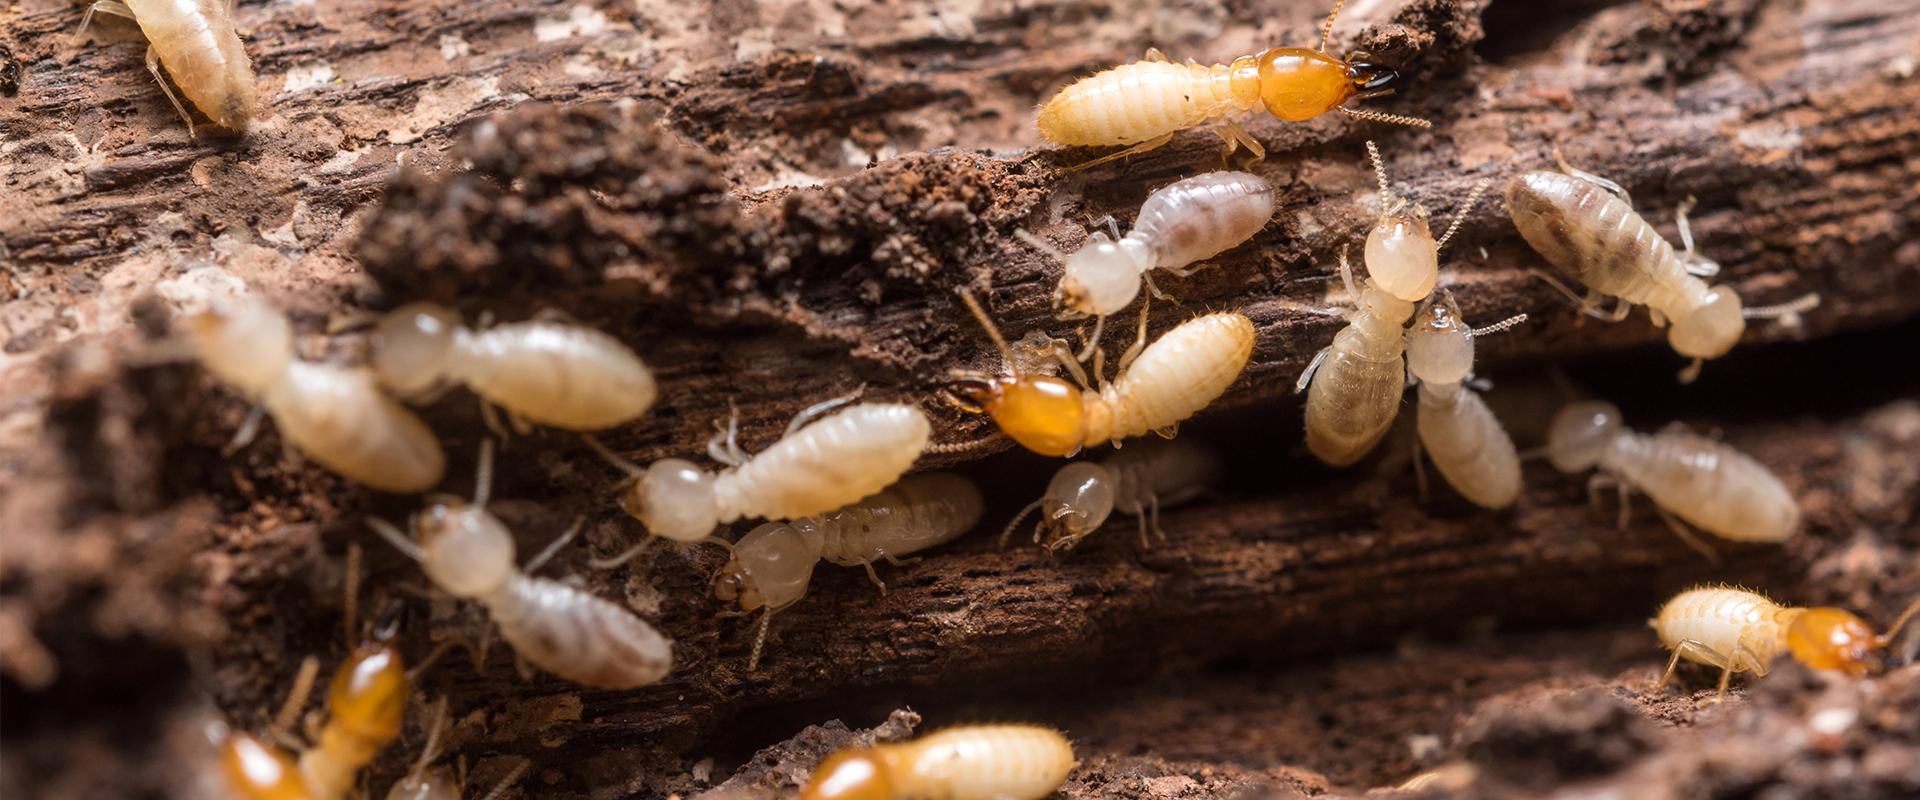 many termites crawling on damaged wood at a home in glenwood texas